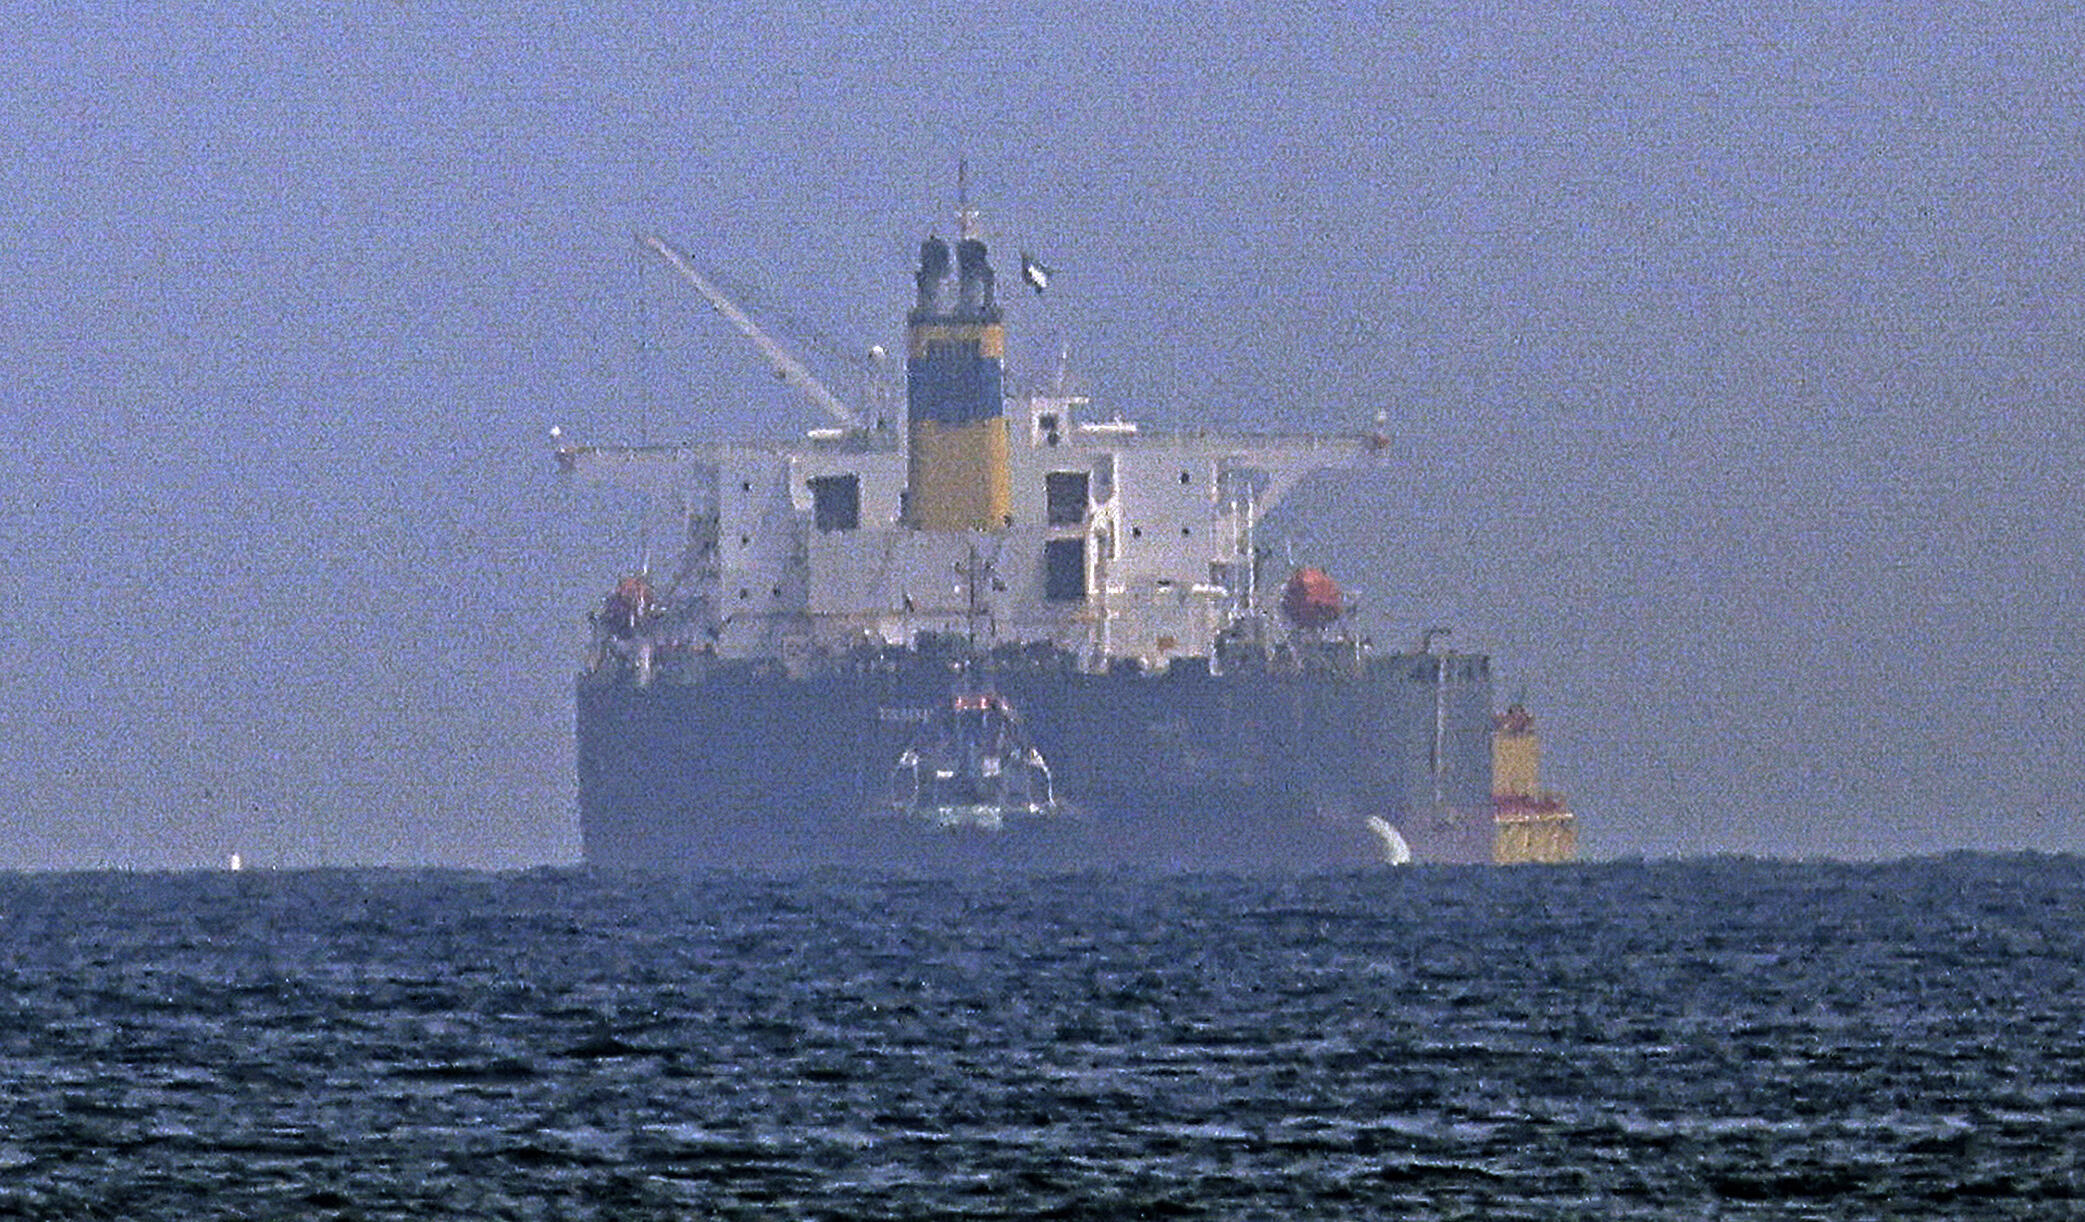 Israeli-linked tanker MT Mercer Street, which was attacked off Oman last week with the loss of two crew, reaches anchorage off the east coast of the United Arab Emirates